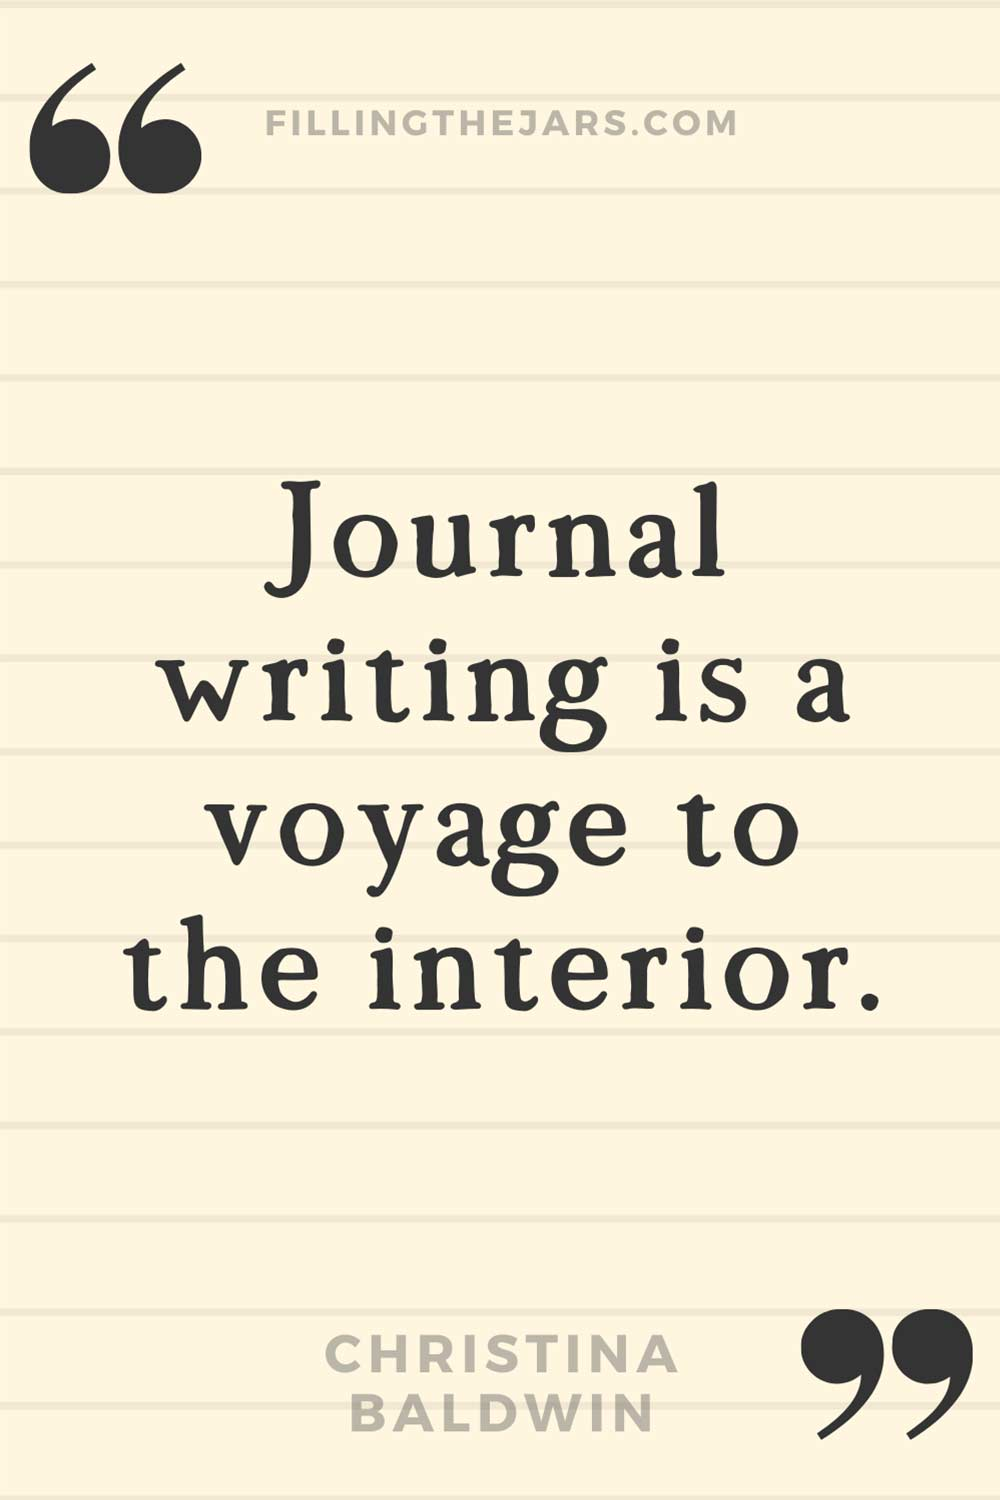 Christina Baldwin quote 'Journal writing is a voyage to the interior.' on lightly lined background.